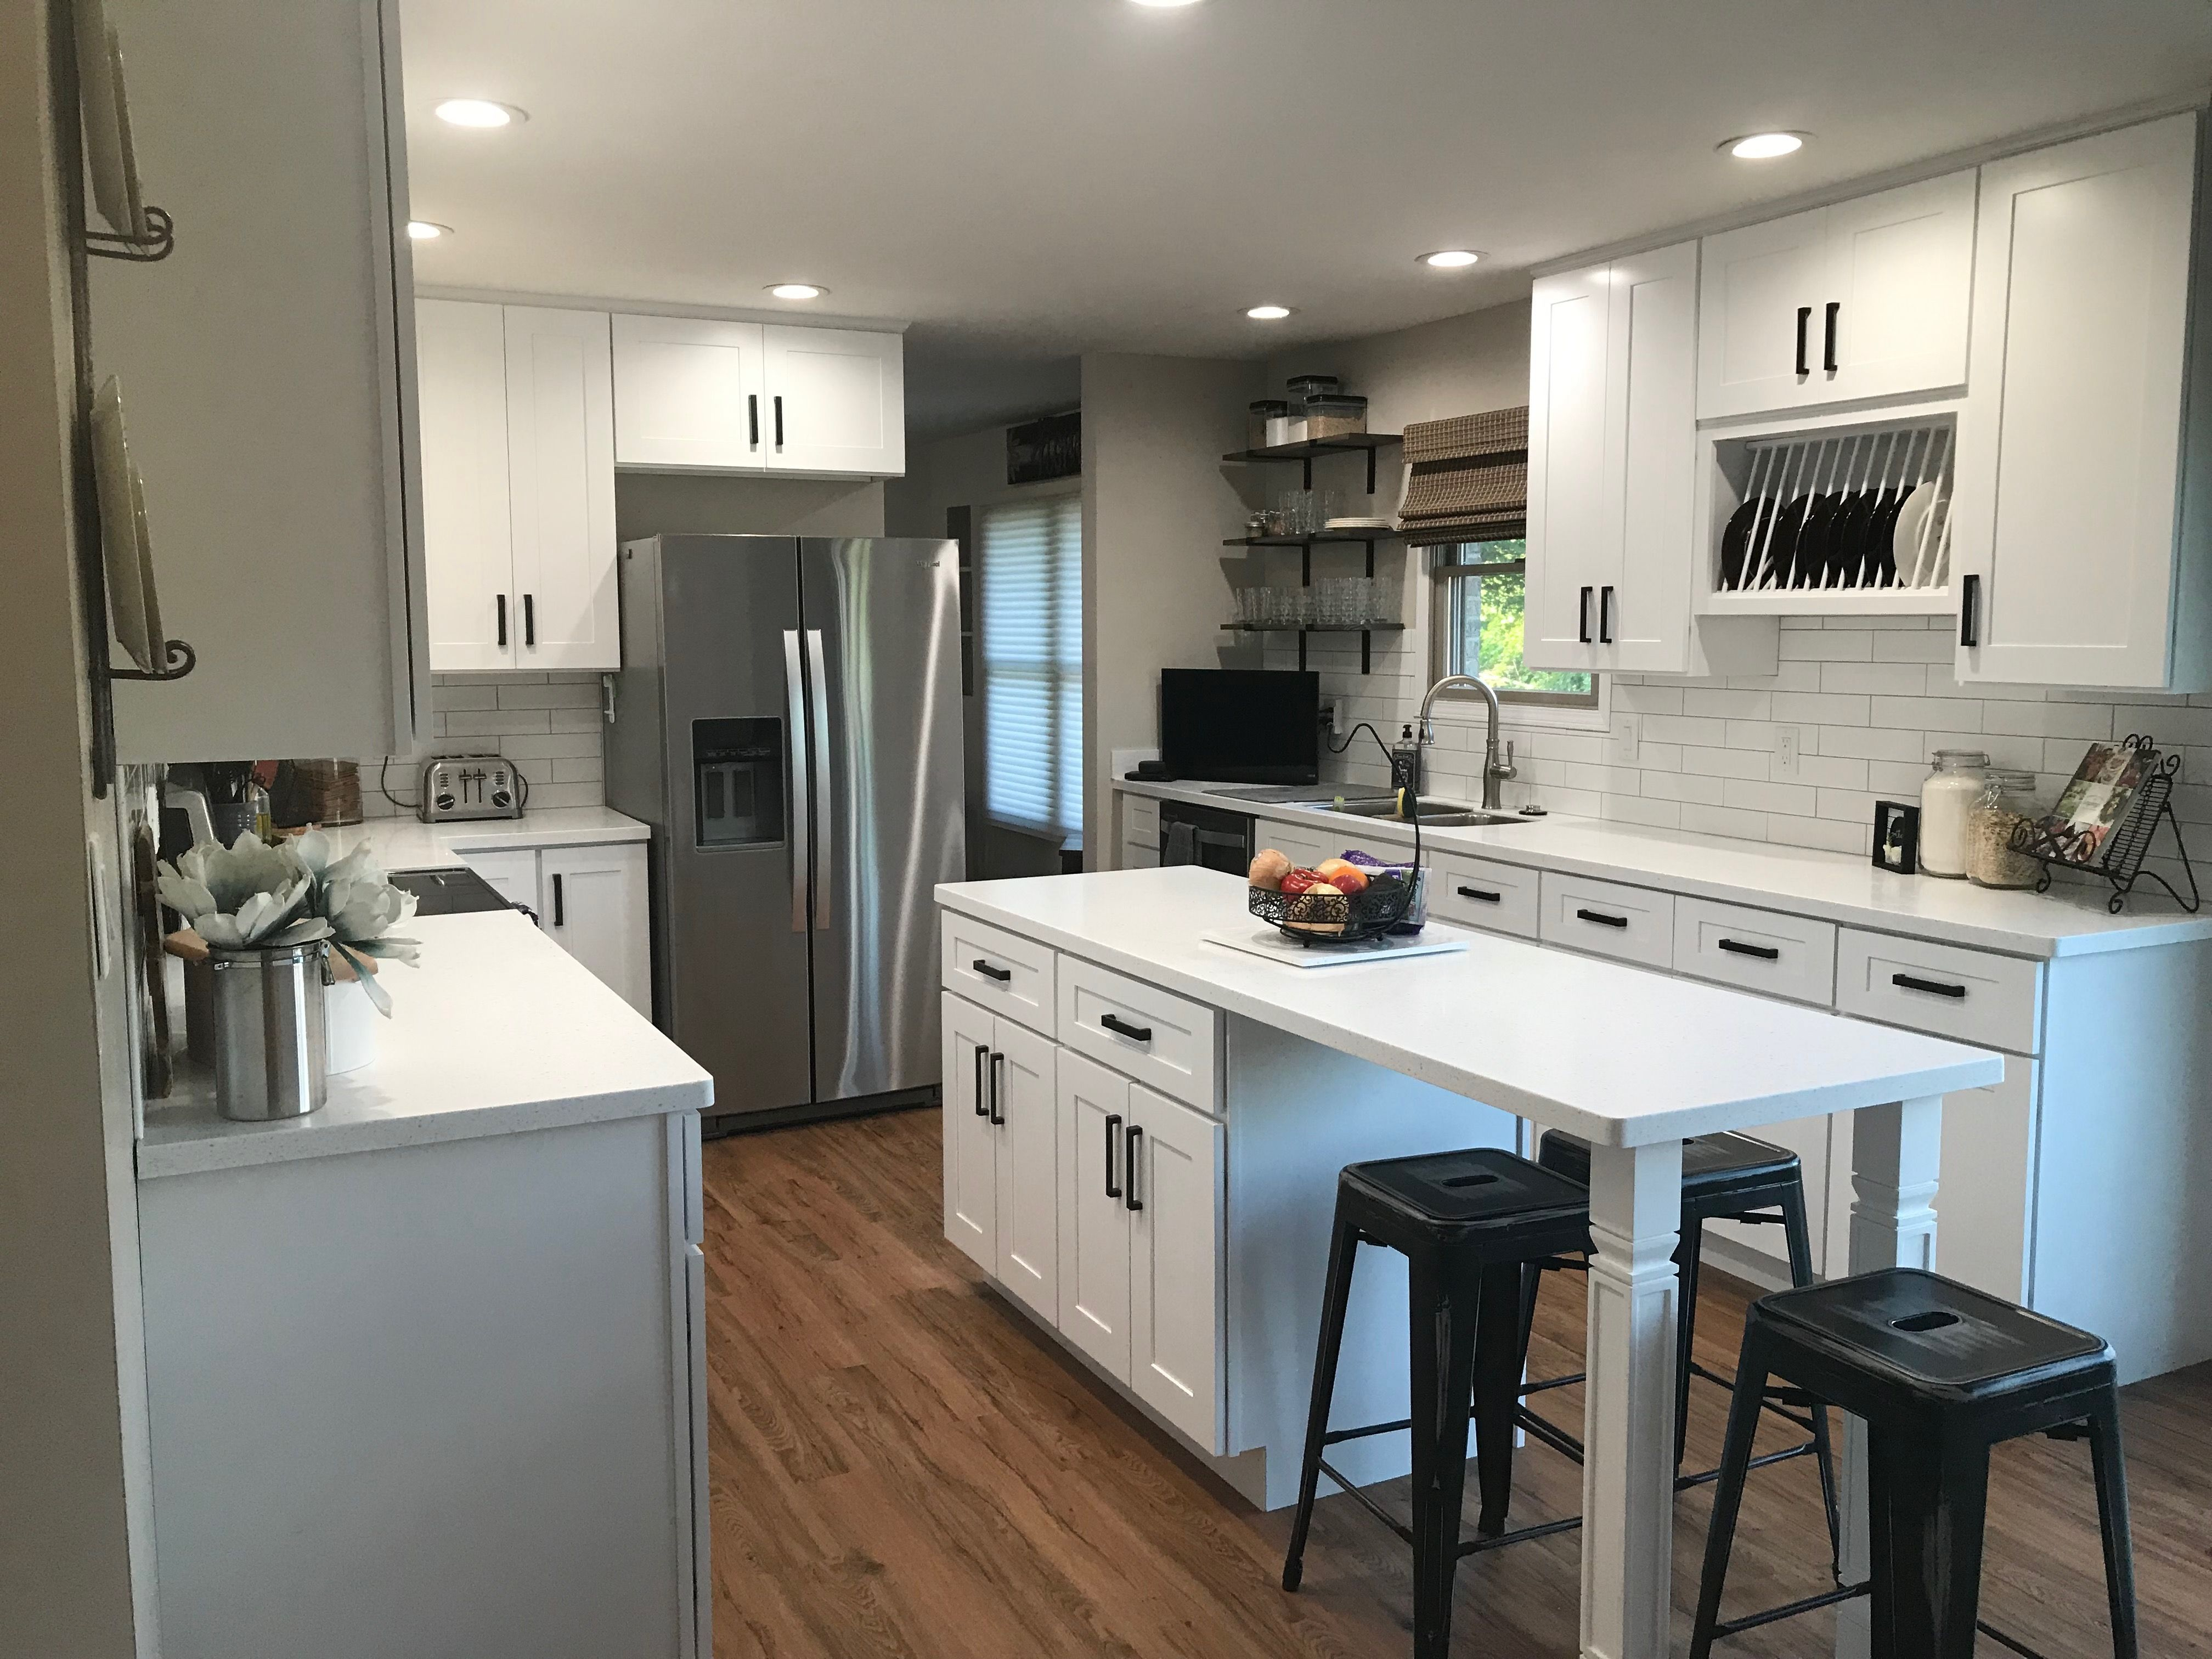 Lily Ann Cabinets White Shaker Kitchen Home Design Living Room Rustic Kitchen Design Rustic Kitchen